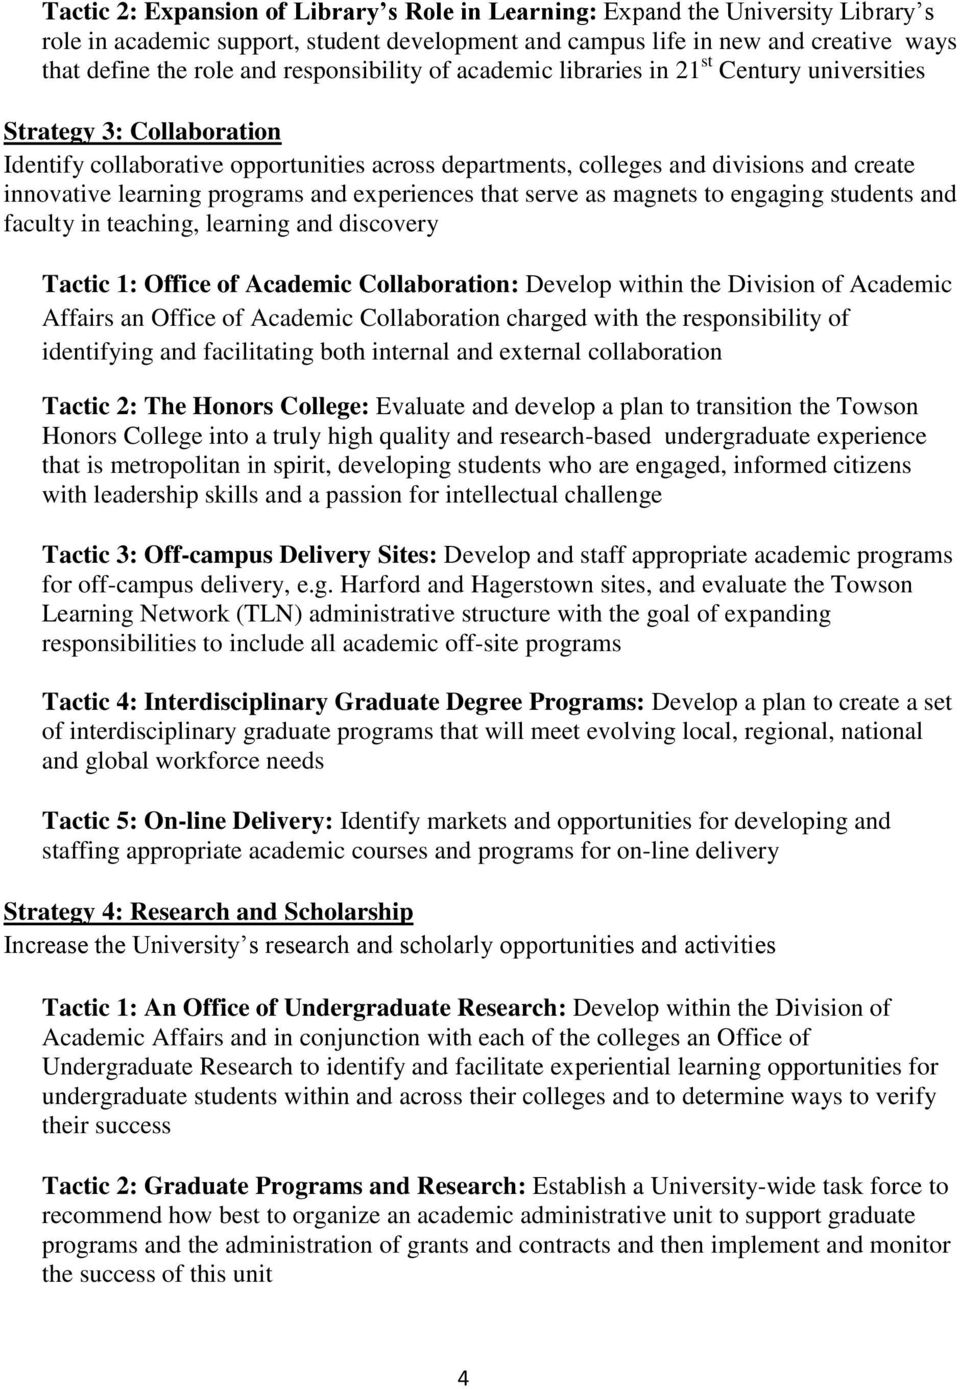 learning programs and experiences that serve as magnets to engaging students and faculty in teaching, learning and discovery Tactic 1: Office of Academic Collaboration: Develop within the Division of